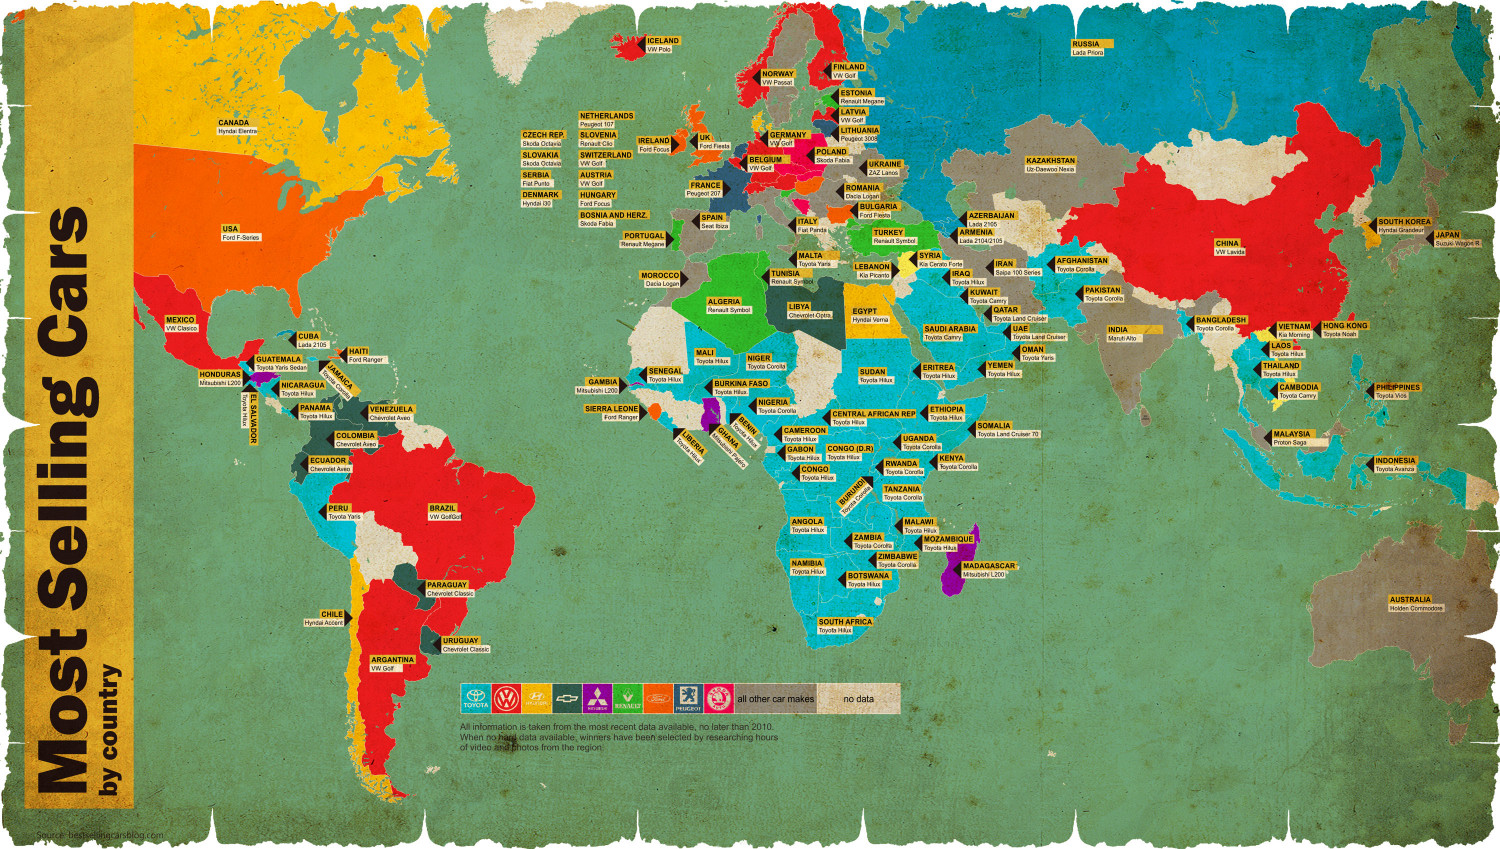 Most Selling Cars by Country Infographic